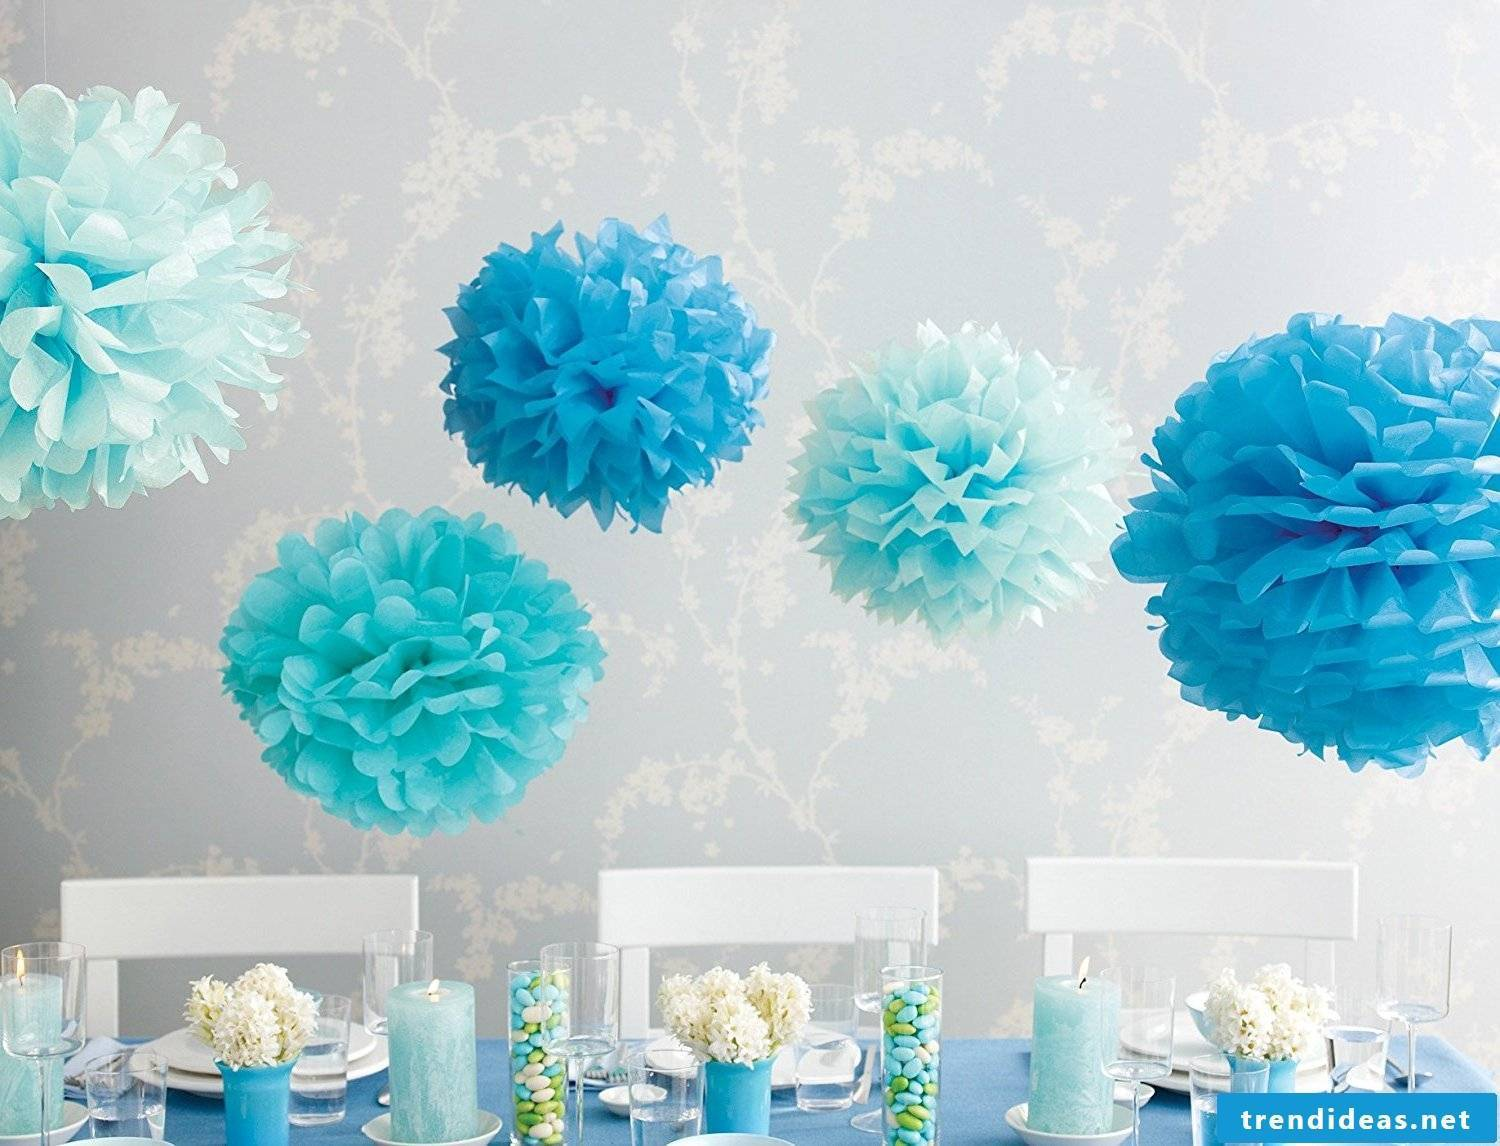 Pompoms craft-paper pompoms as decoration